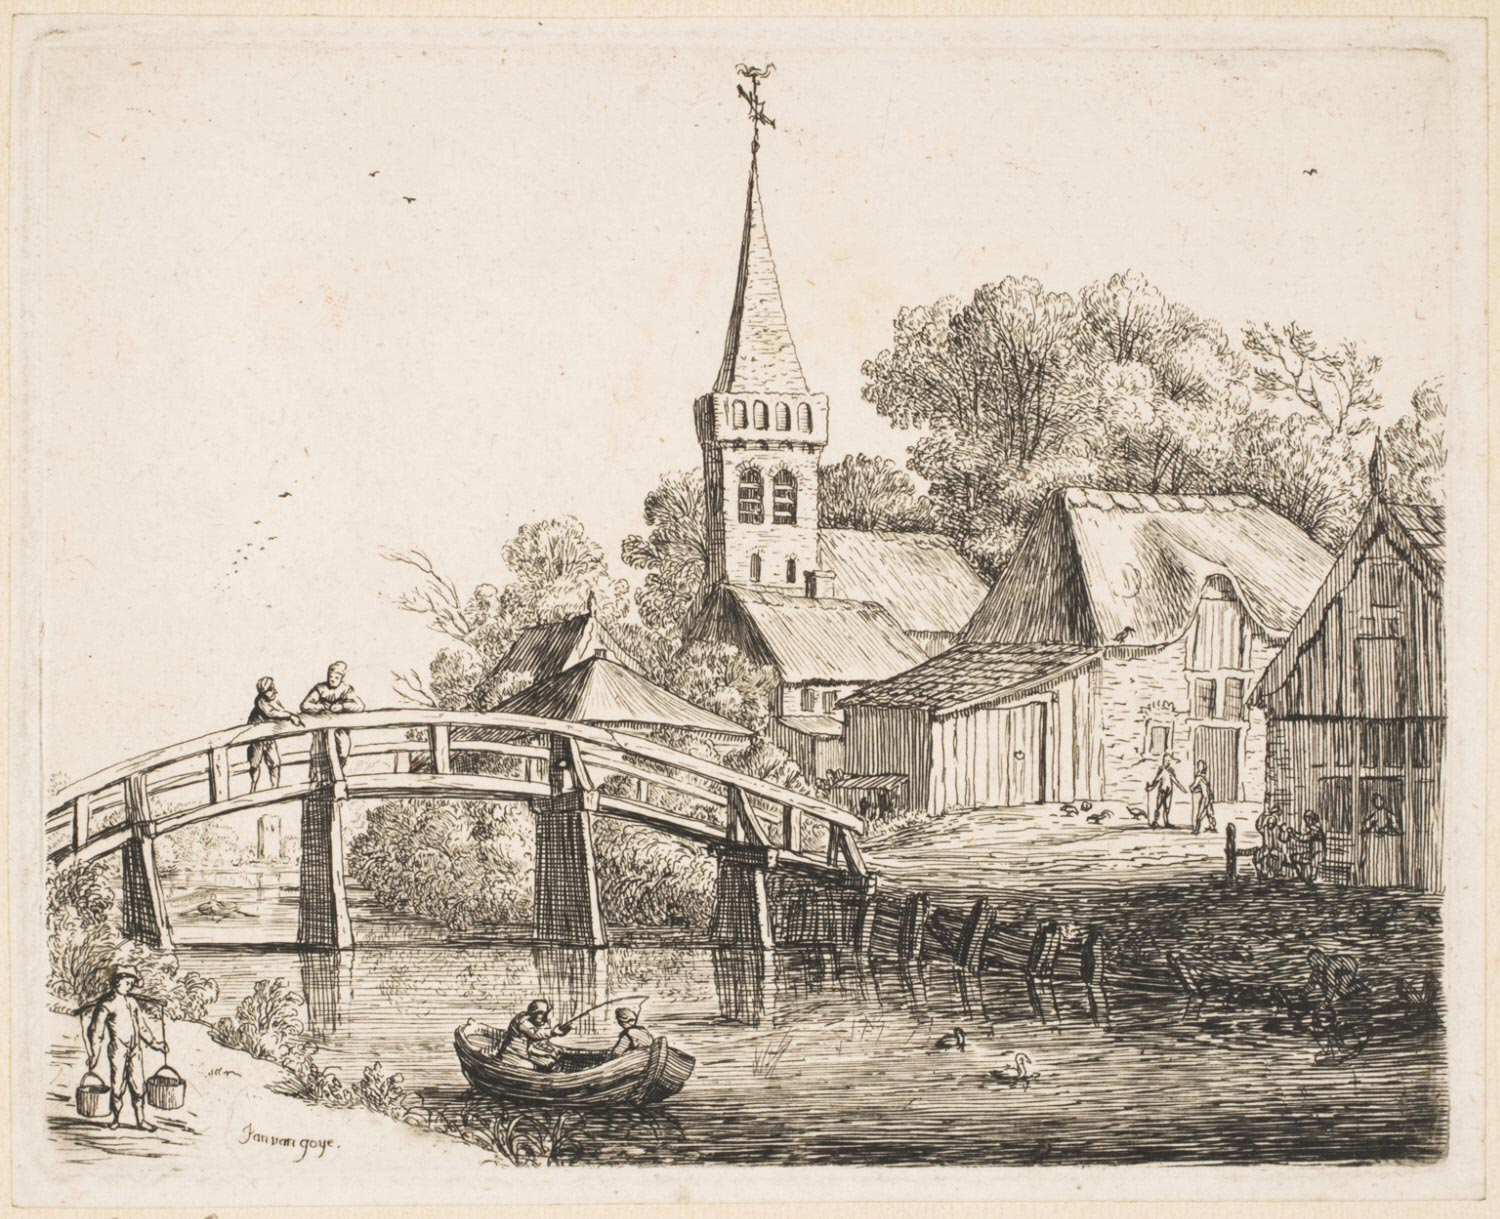 Landscape with a Wooden Bridge